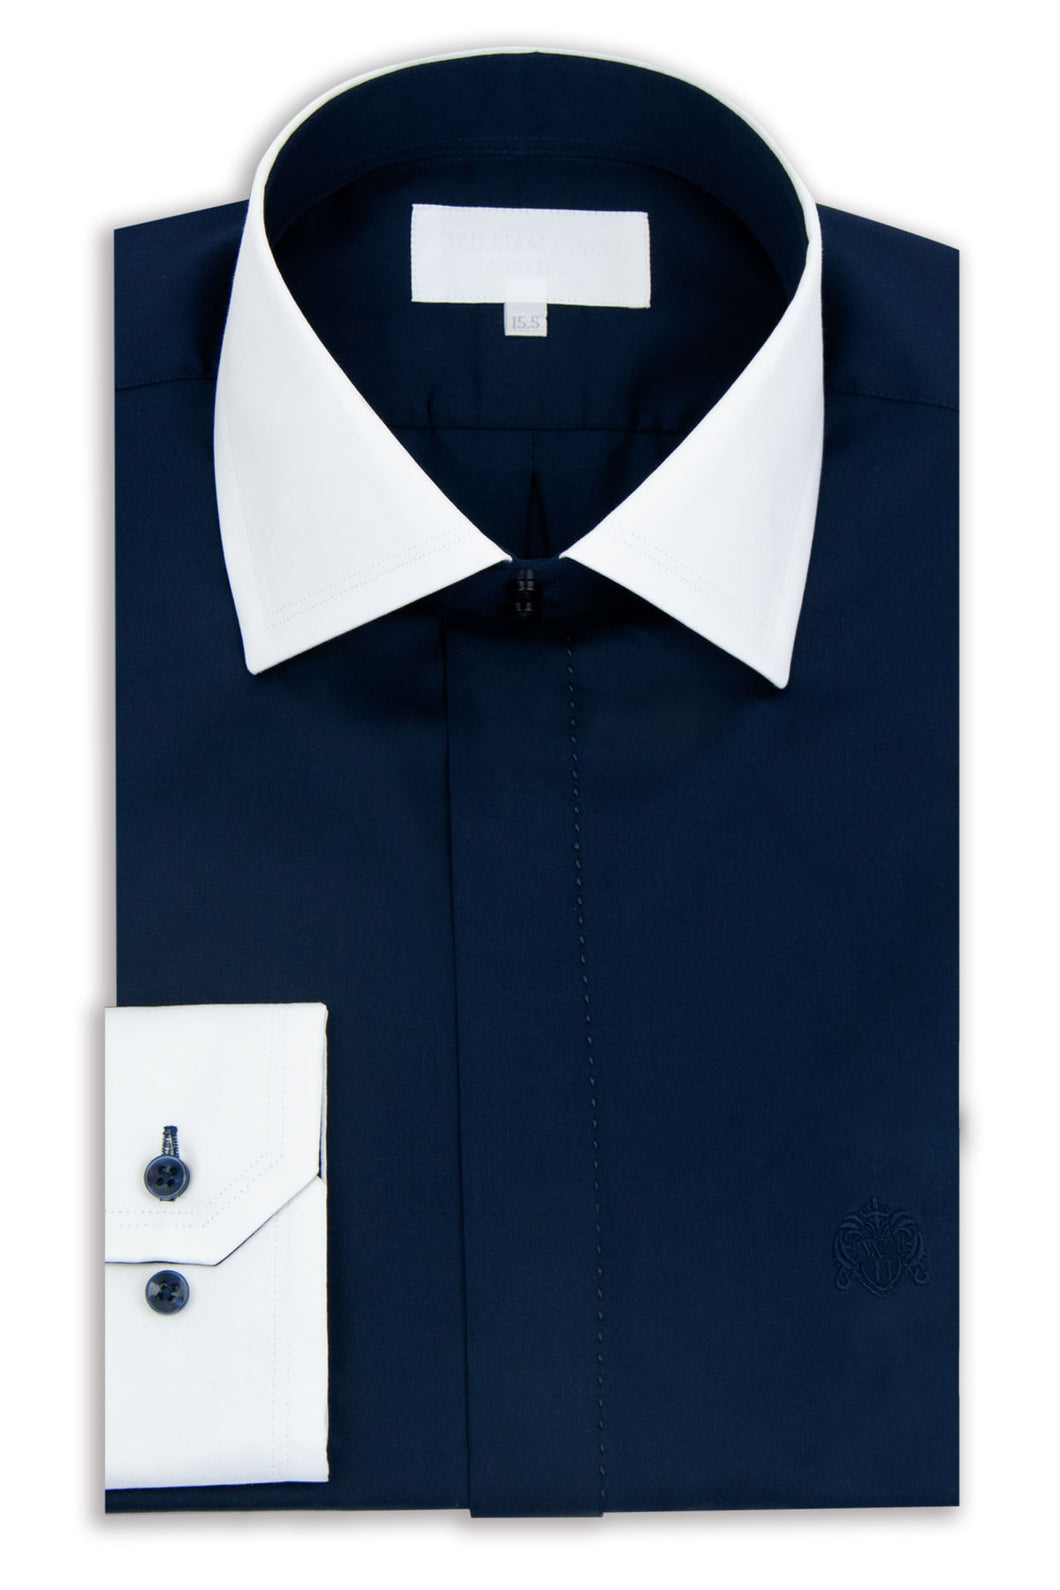 Navy Cutaway Collar Shirt with White Collar